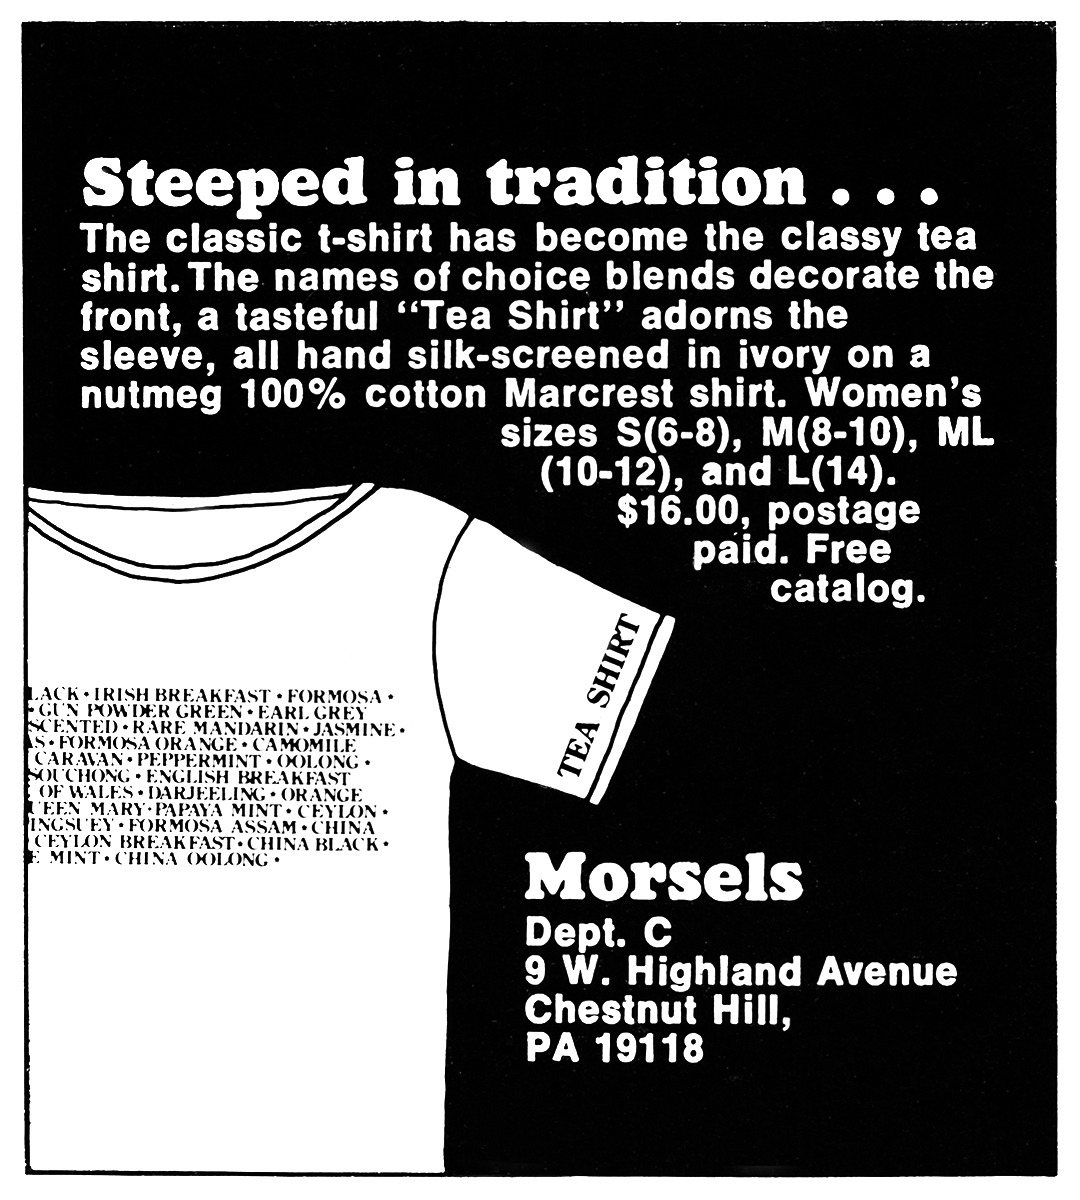 Morsels Advertisement - Gourmet: January 1979